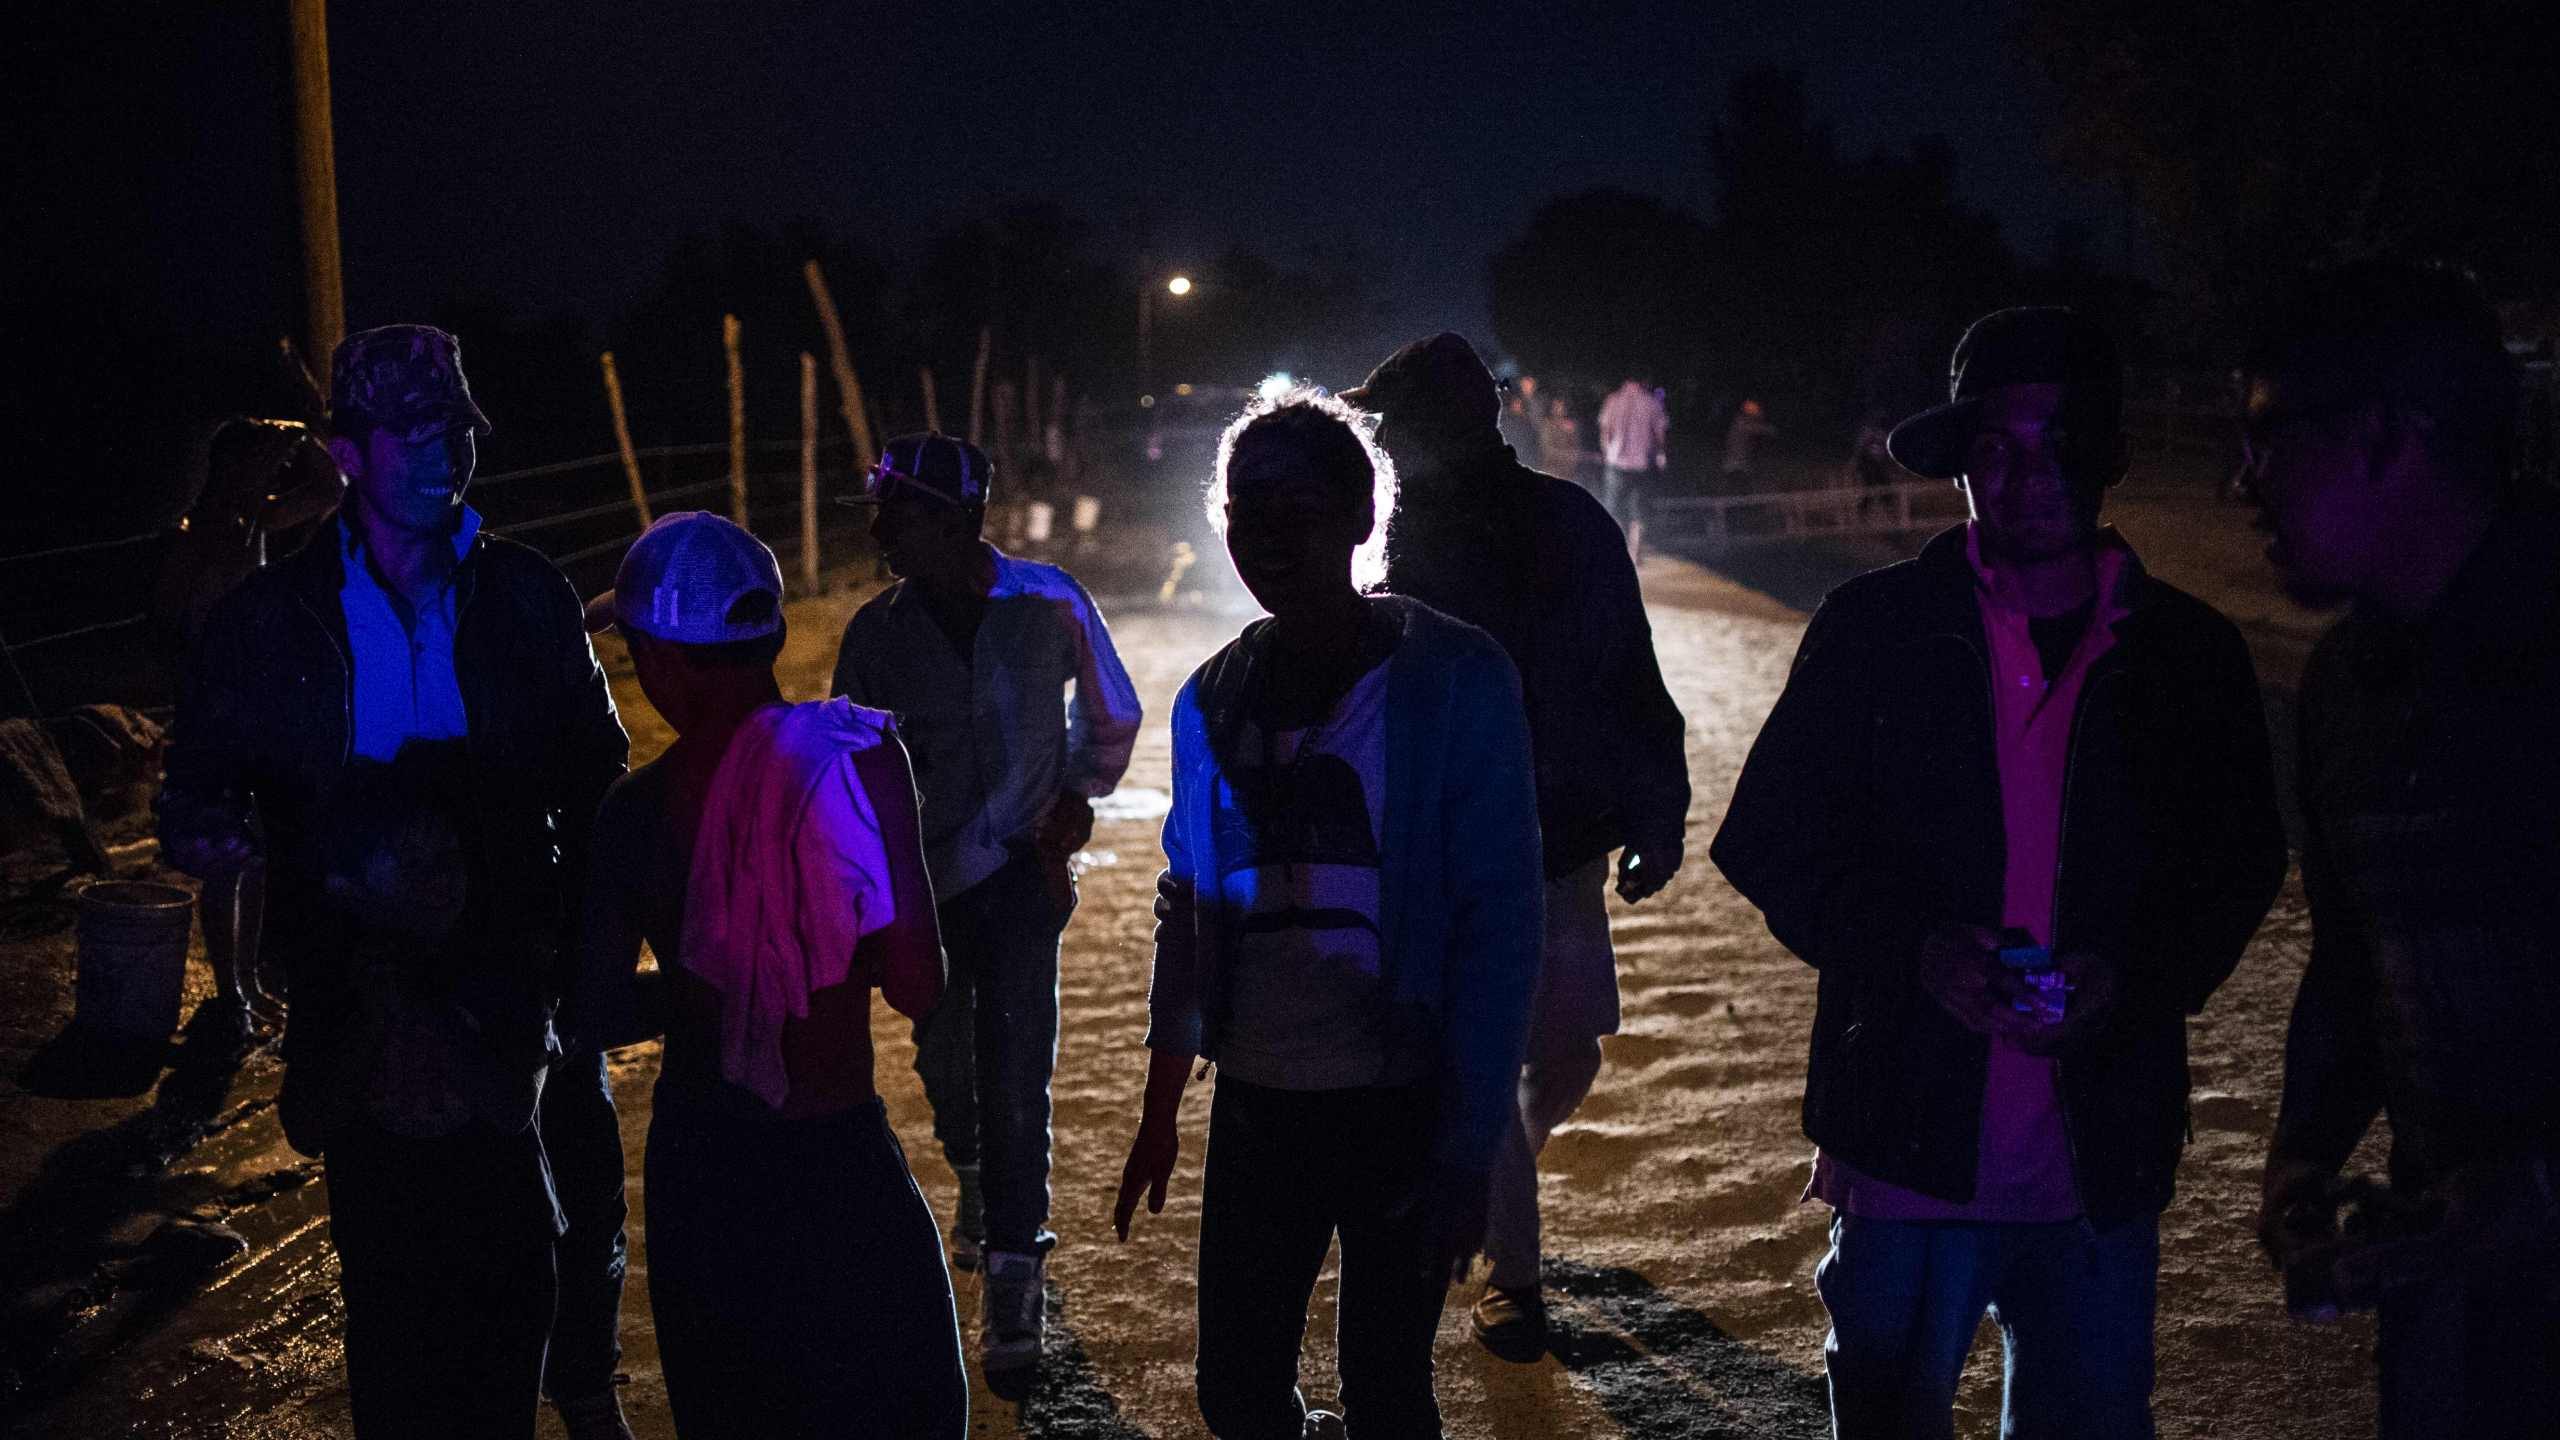 Central American migrants moving towards the U.S. in hopes of a better life remain in a shelter in Mexicali, in the Mexican state of Baja California, on Nov. 18, 2018. (Credit: Pedro Pardo / AFP / Getty Images)